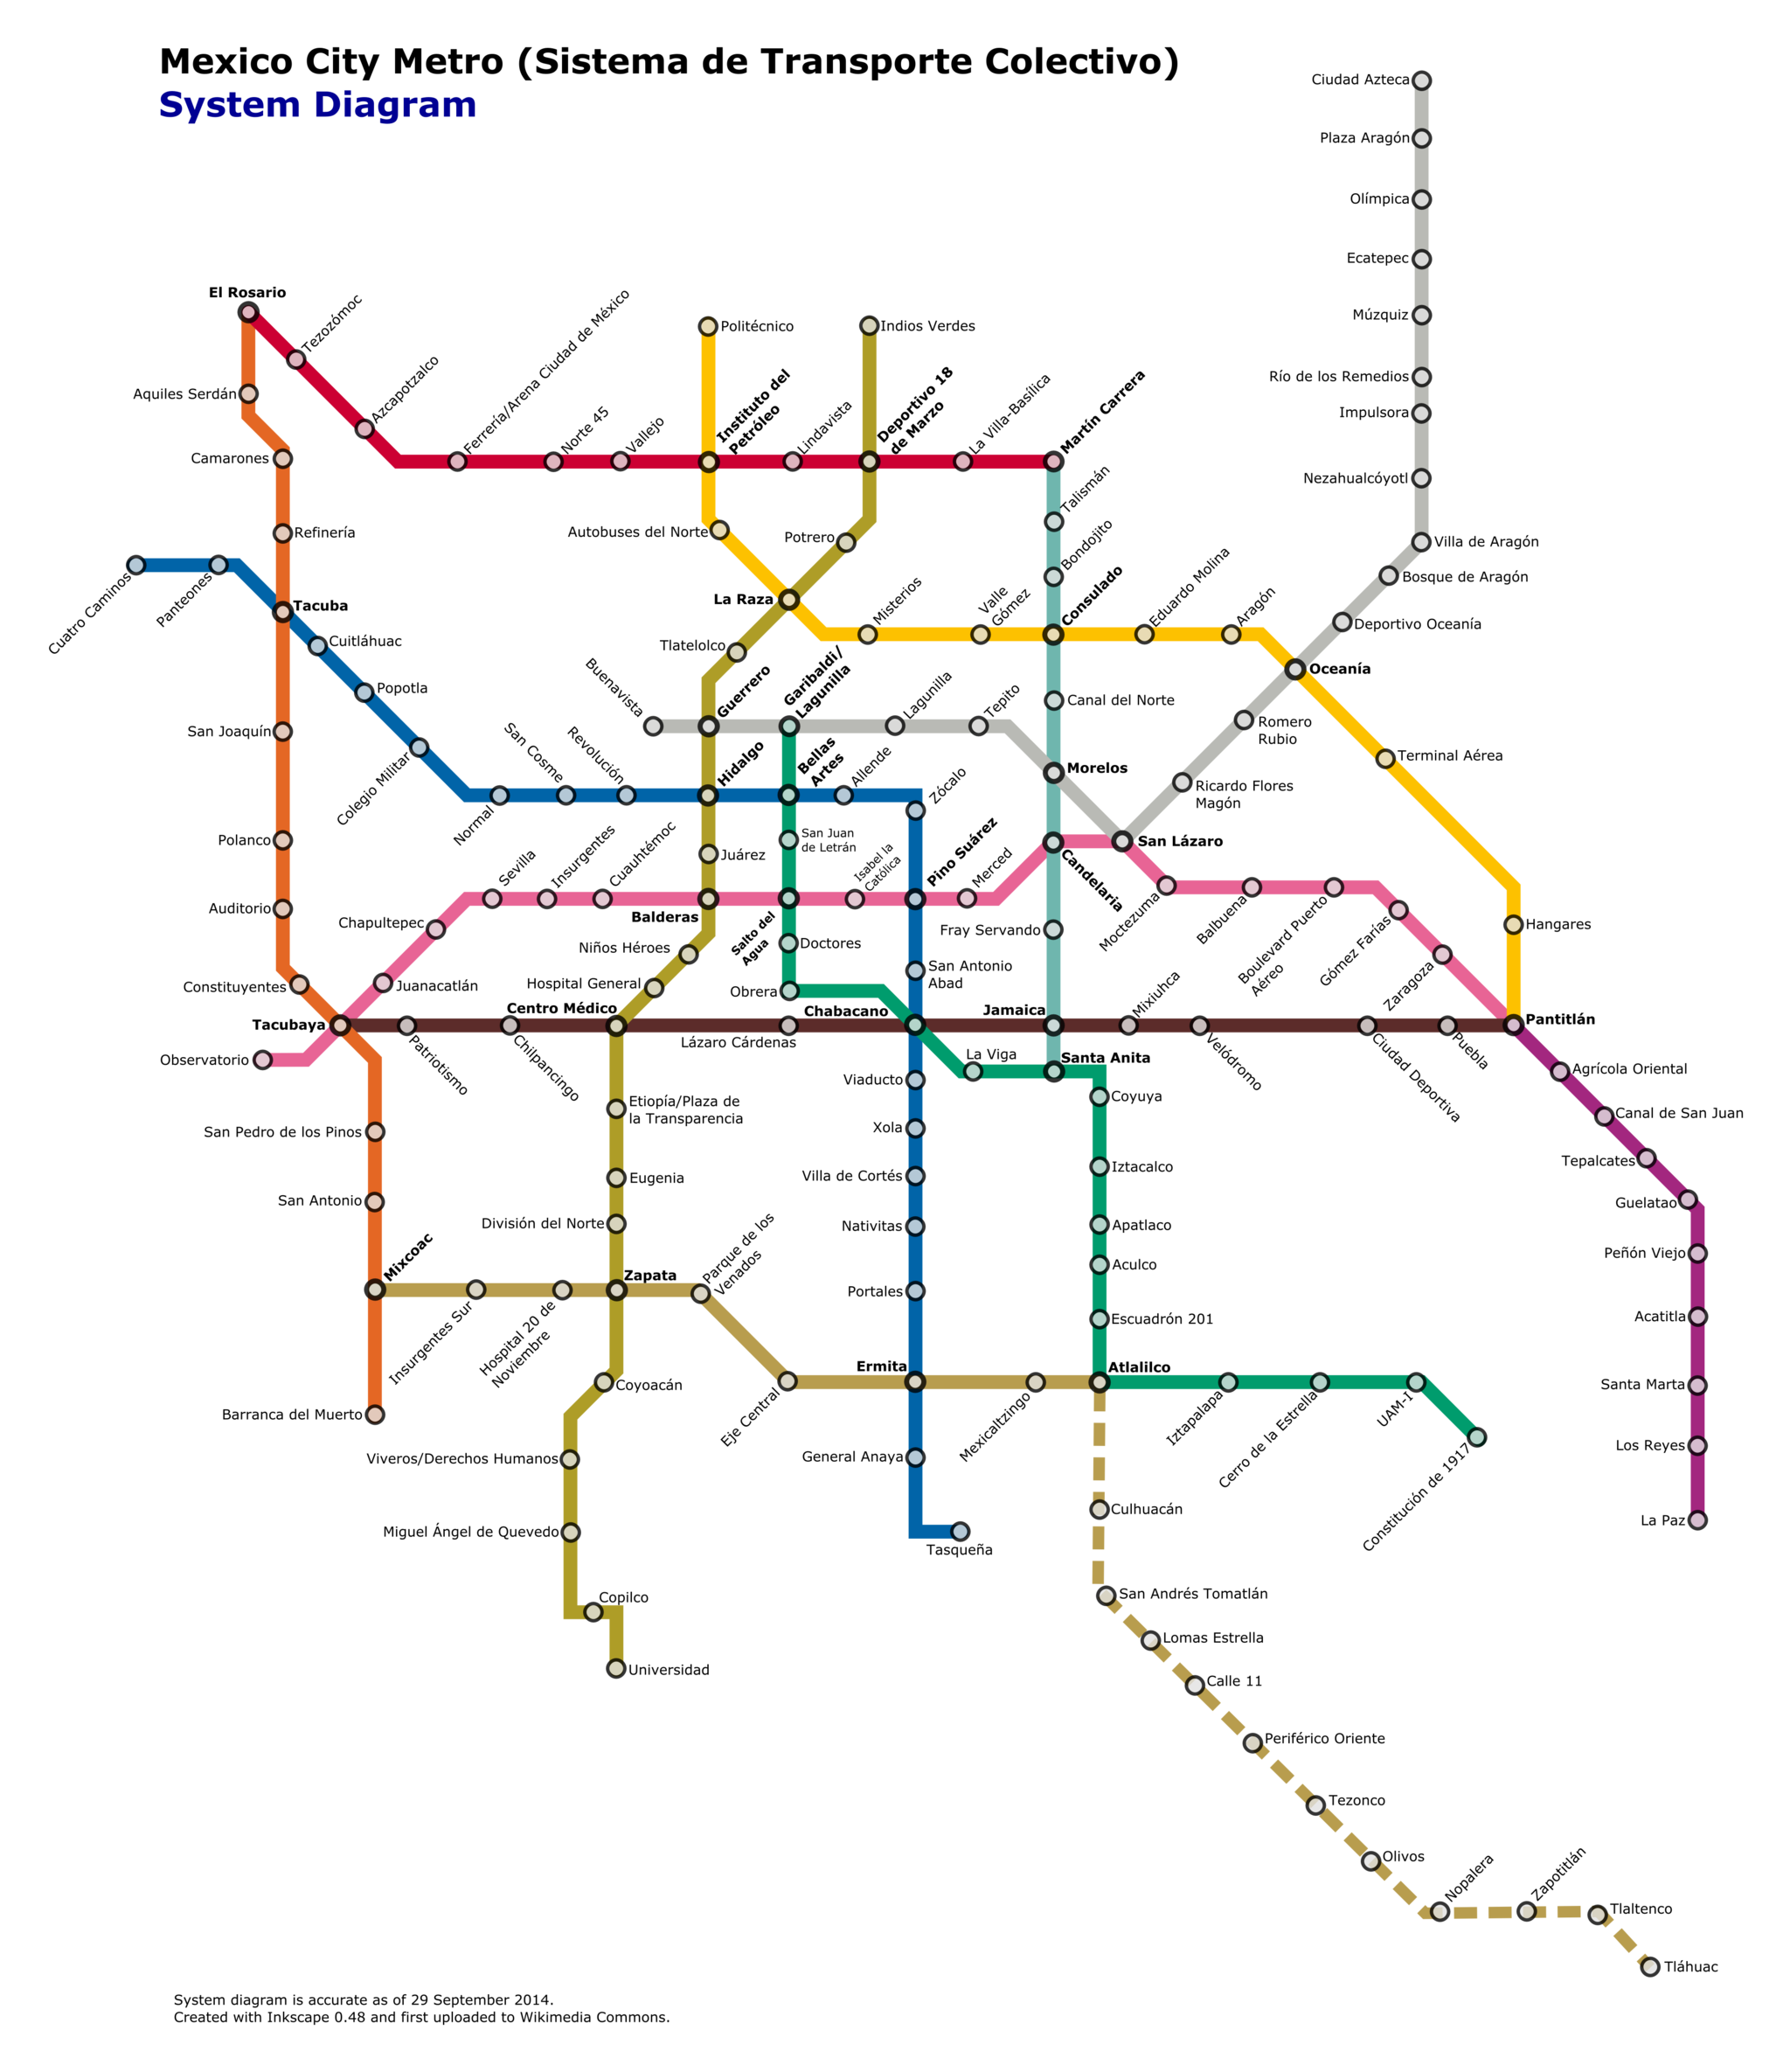 A Users Guide to the Mexico City Public Transport System Public